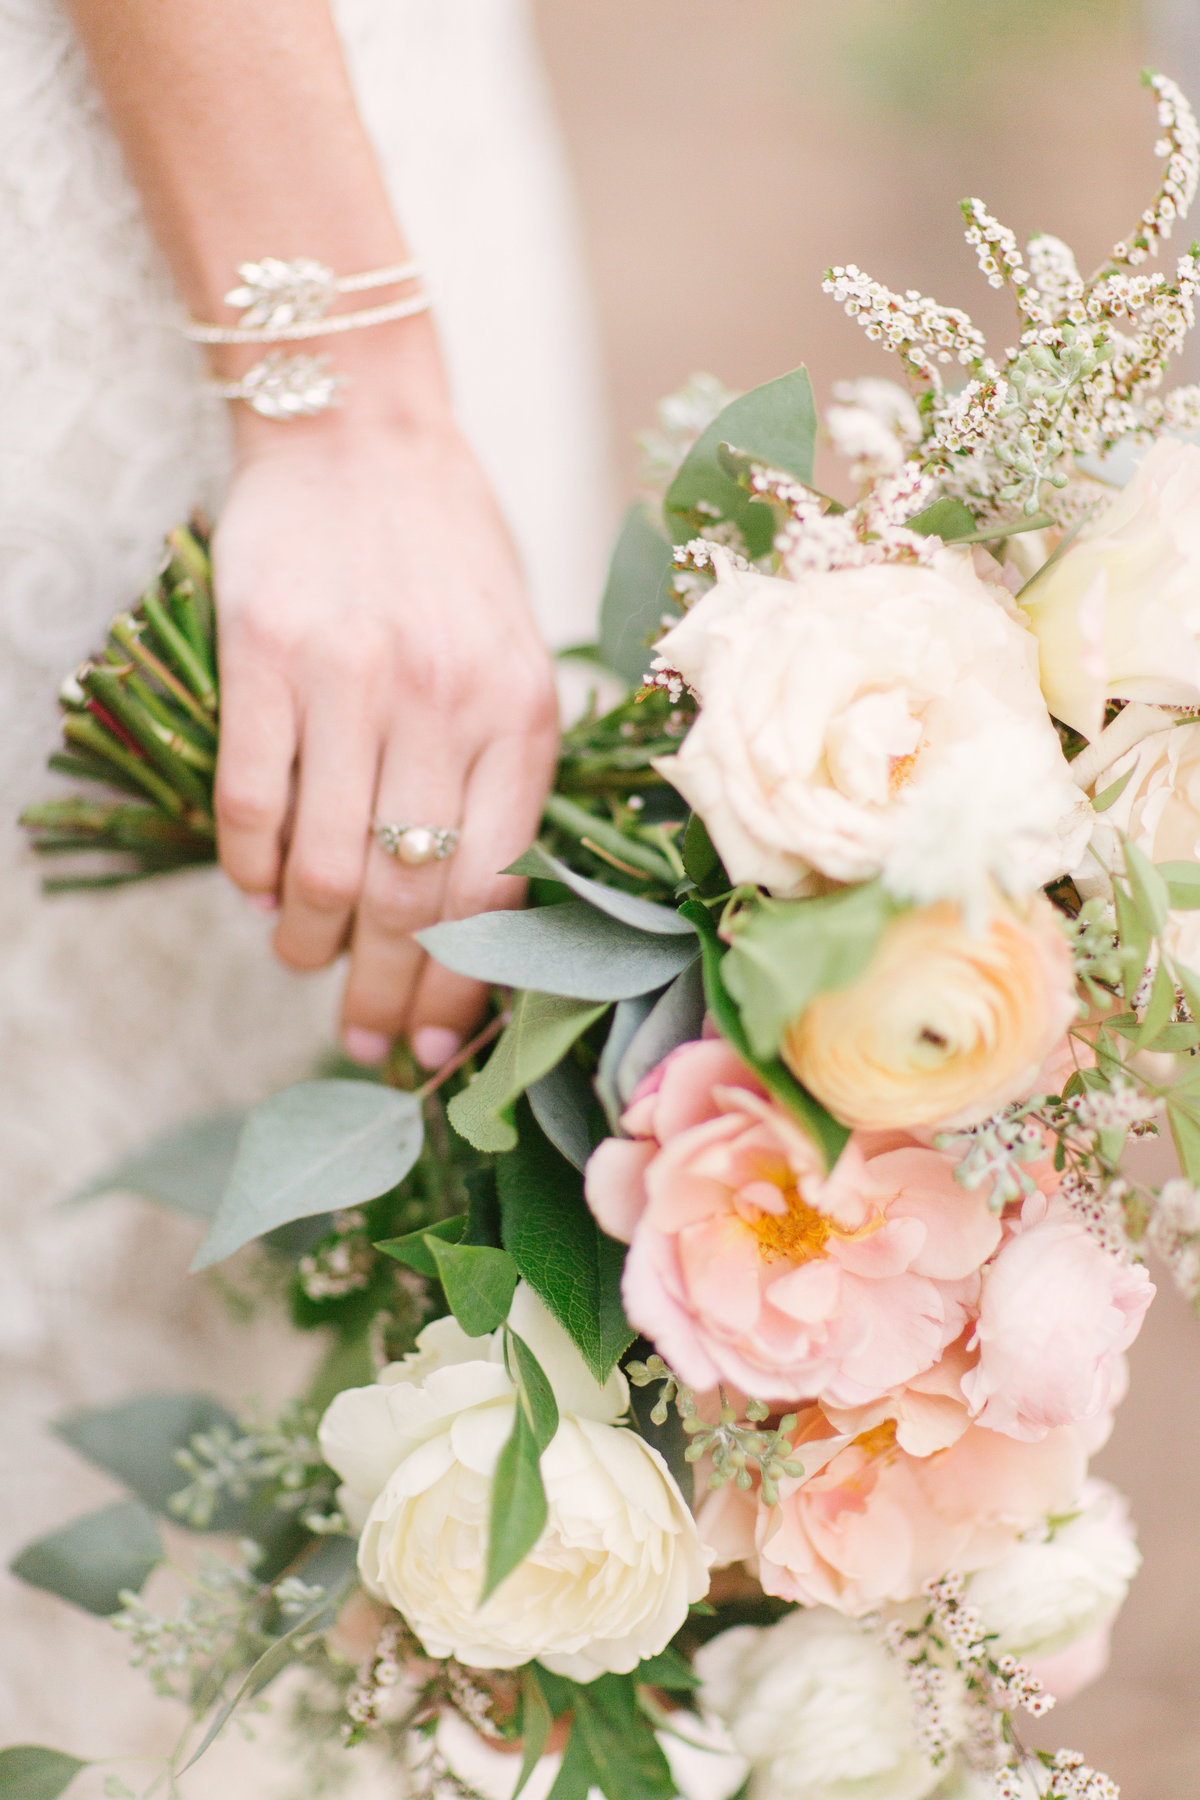 Brides jewelry and bouquet at Firestone Vineyard wedding